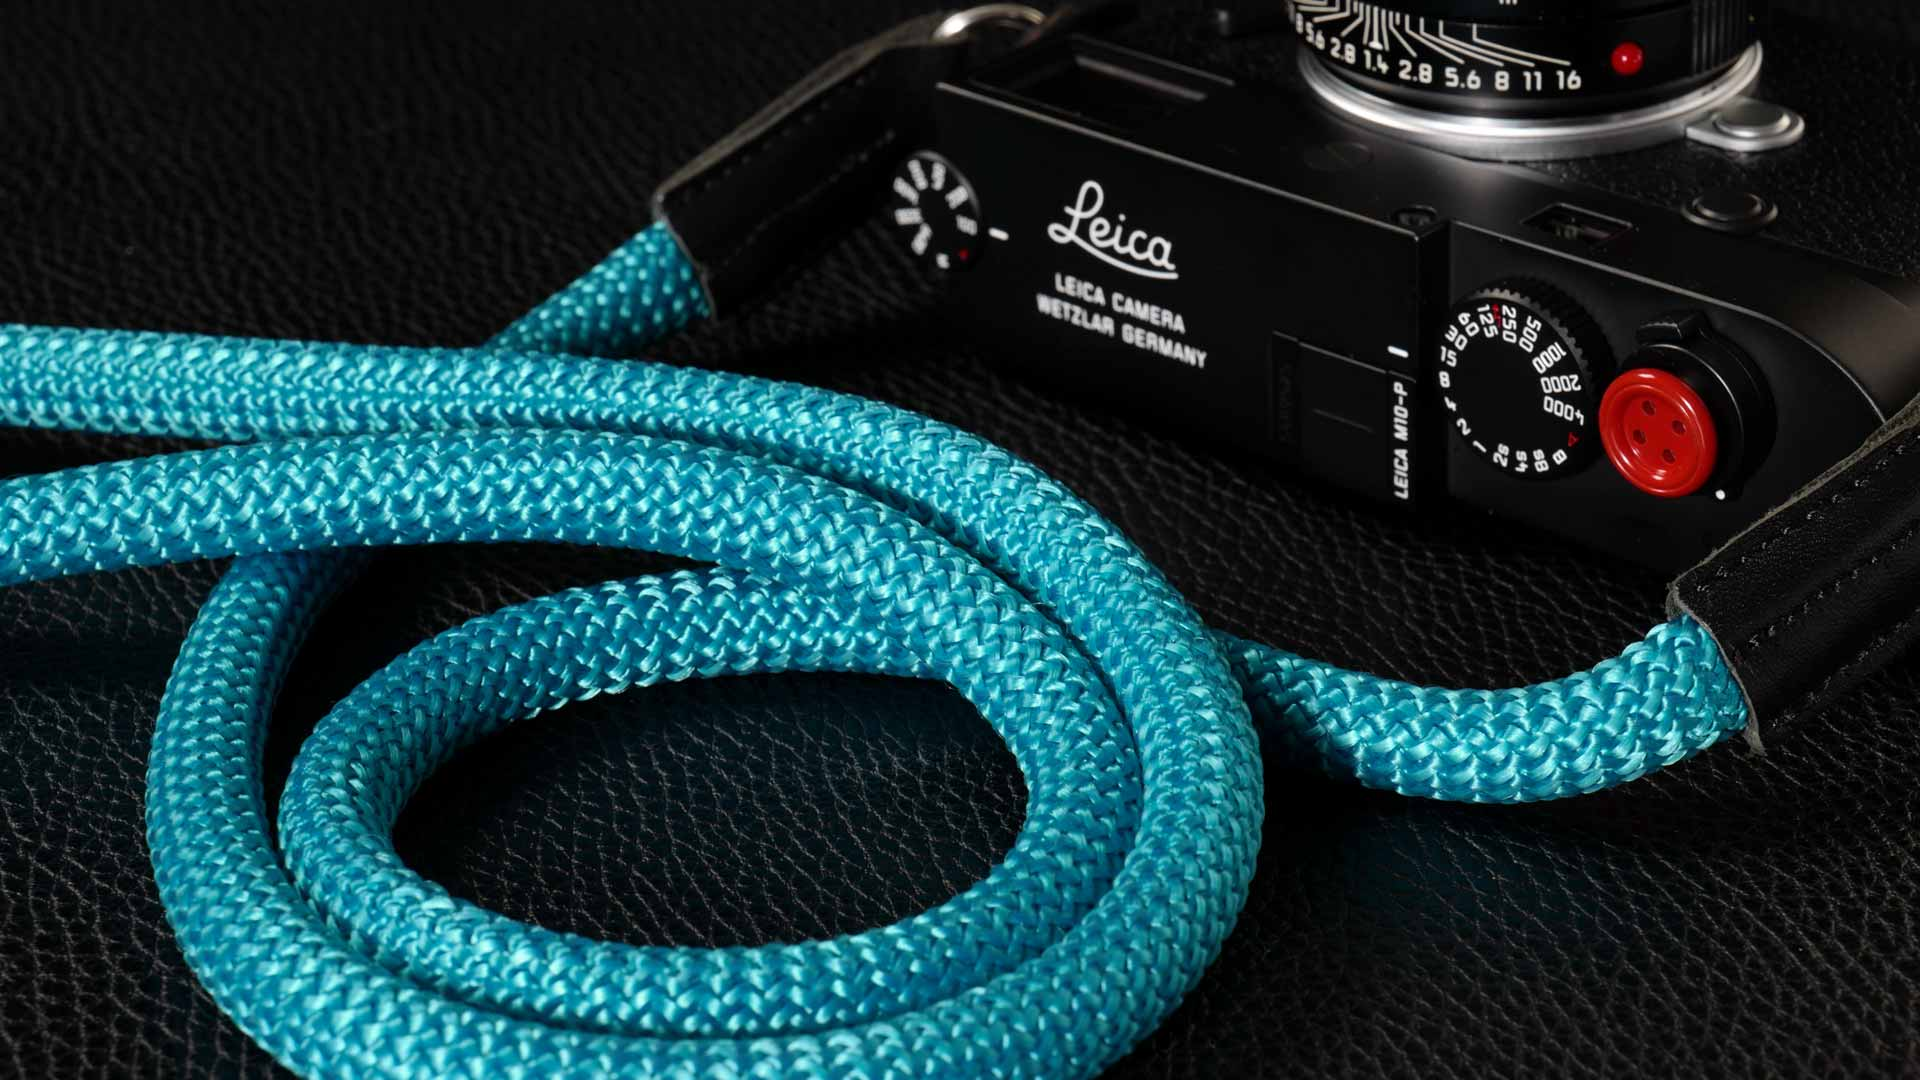 snake strap, rope strap, classic strap, rope camera strap, handmade leather camera strap, leica camera strap, mirrorless camera strap, handmade camera strap, dslr camera strap, turquoise camera strap